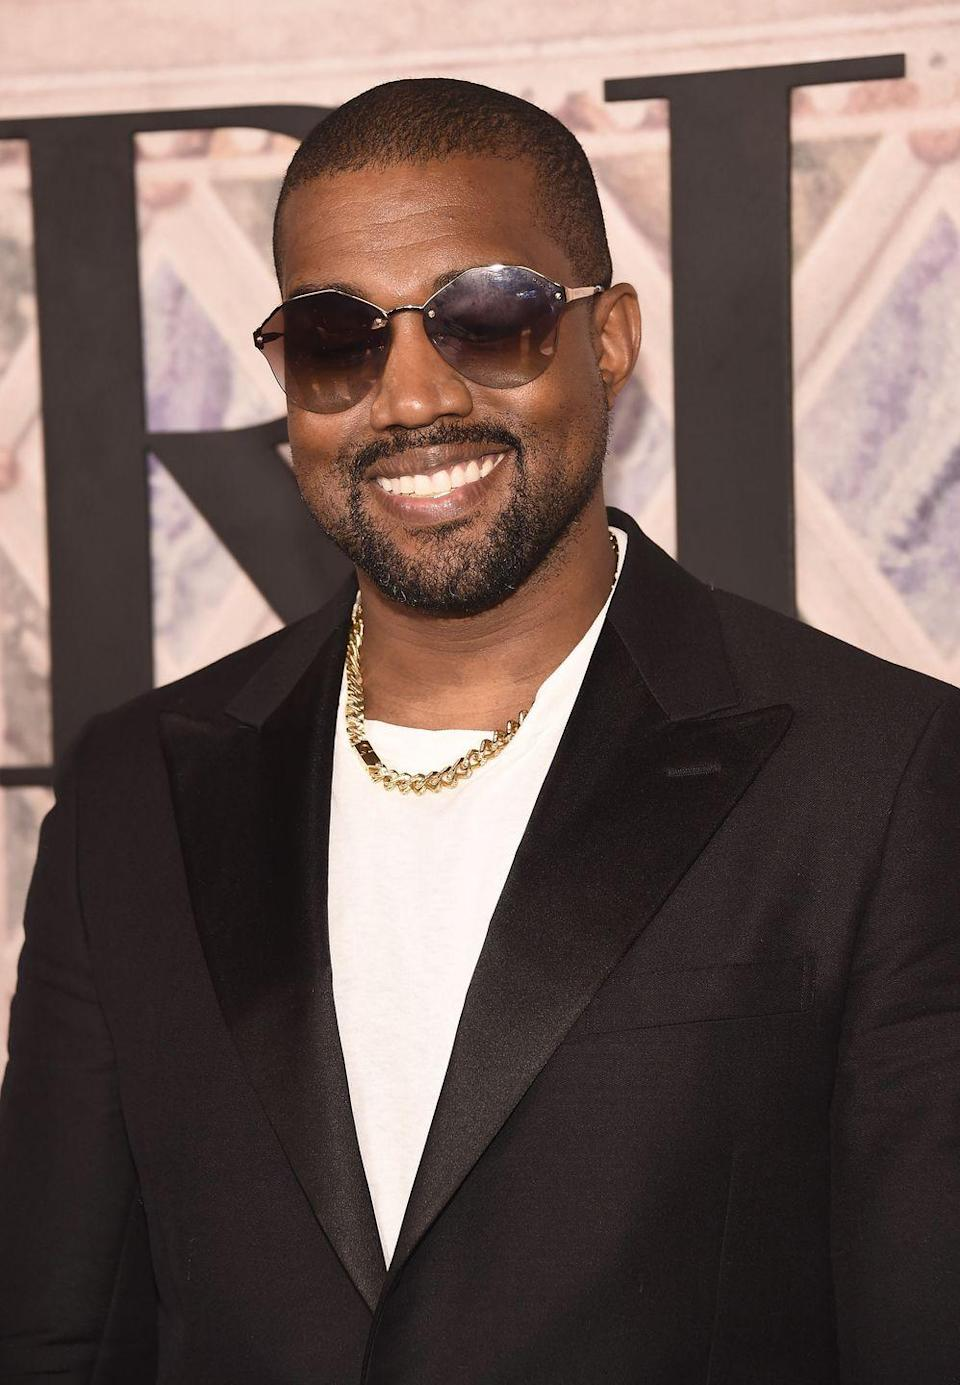 "<p>Kanye actually worked in fashion <em>before</em> designing Yeezys — when the rapper was in high school, he was a sales associate at the Gap. He told <em><a href=""http://www.papermag.com/kanye-west-in-his-own-words-1427550639.html"" rel=""nofollow noopener"" target=""_blank"" data-ylk=""slk:Paper"" class=""link rapid-noclick-resp"">Paper</a></em>, ""I don't think I had any desire to actually make clothes, but I always felt like that's what I wanted to be around."" </p>"